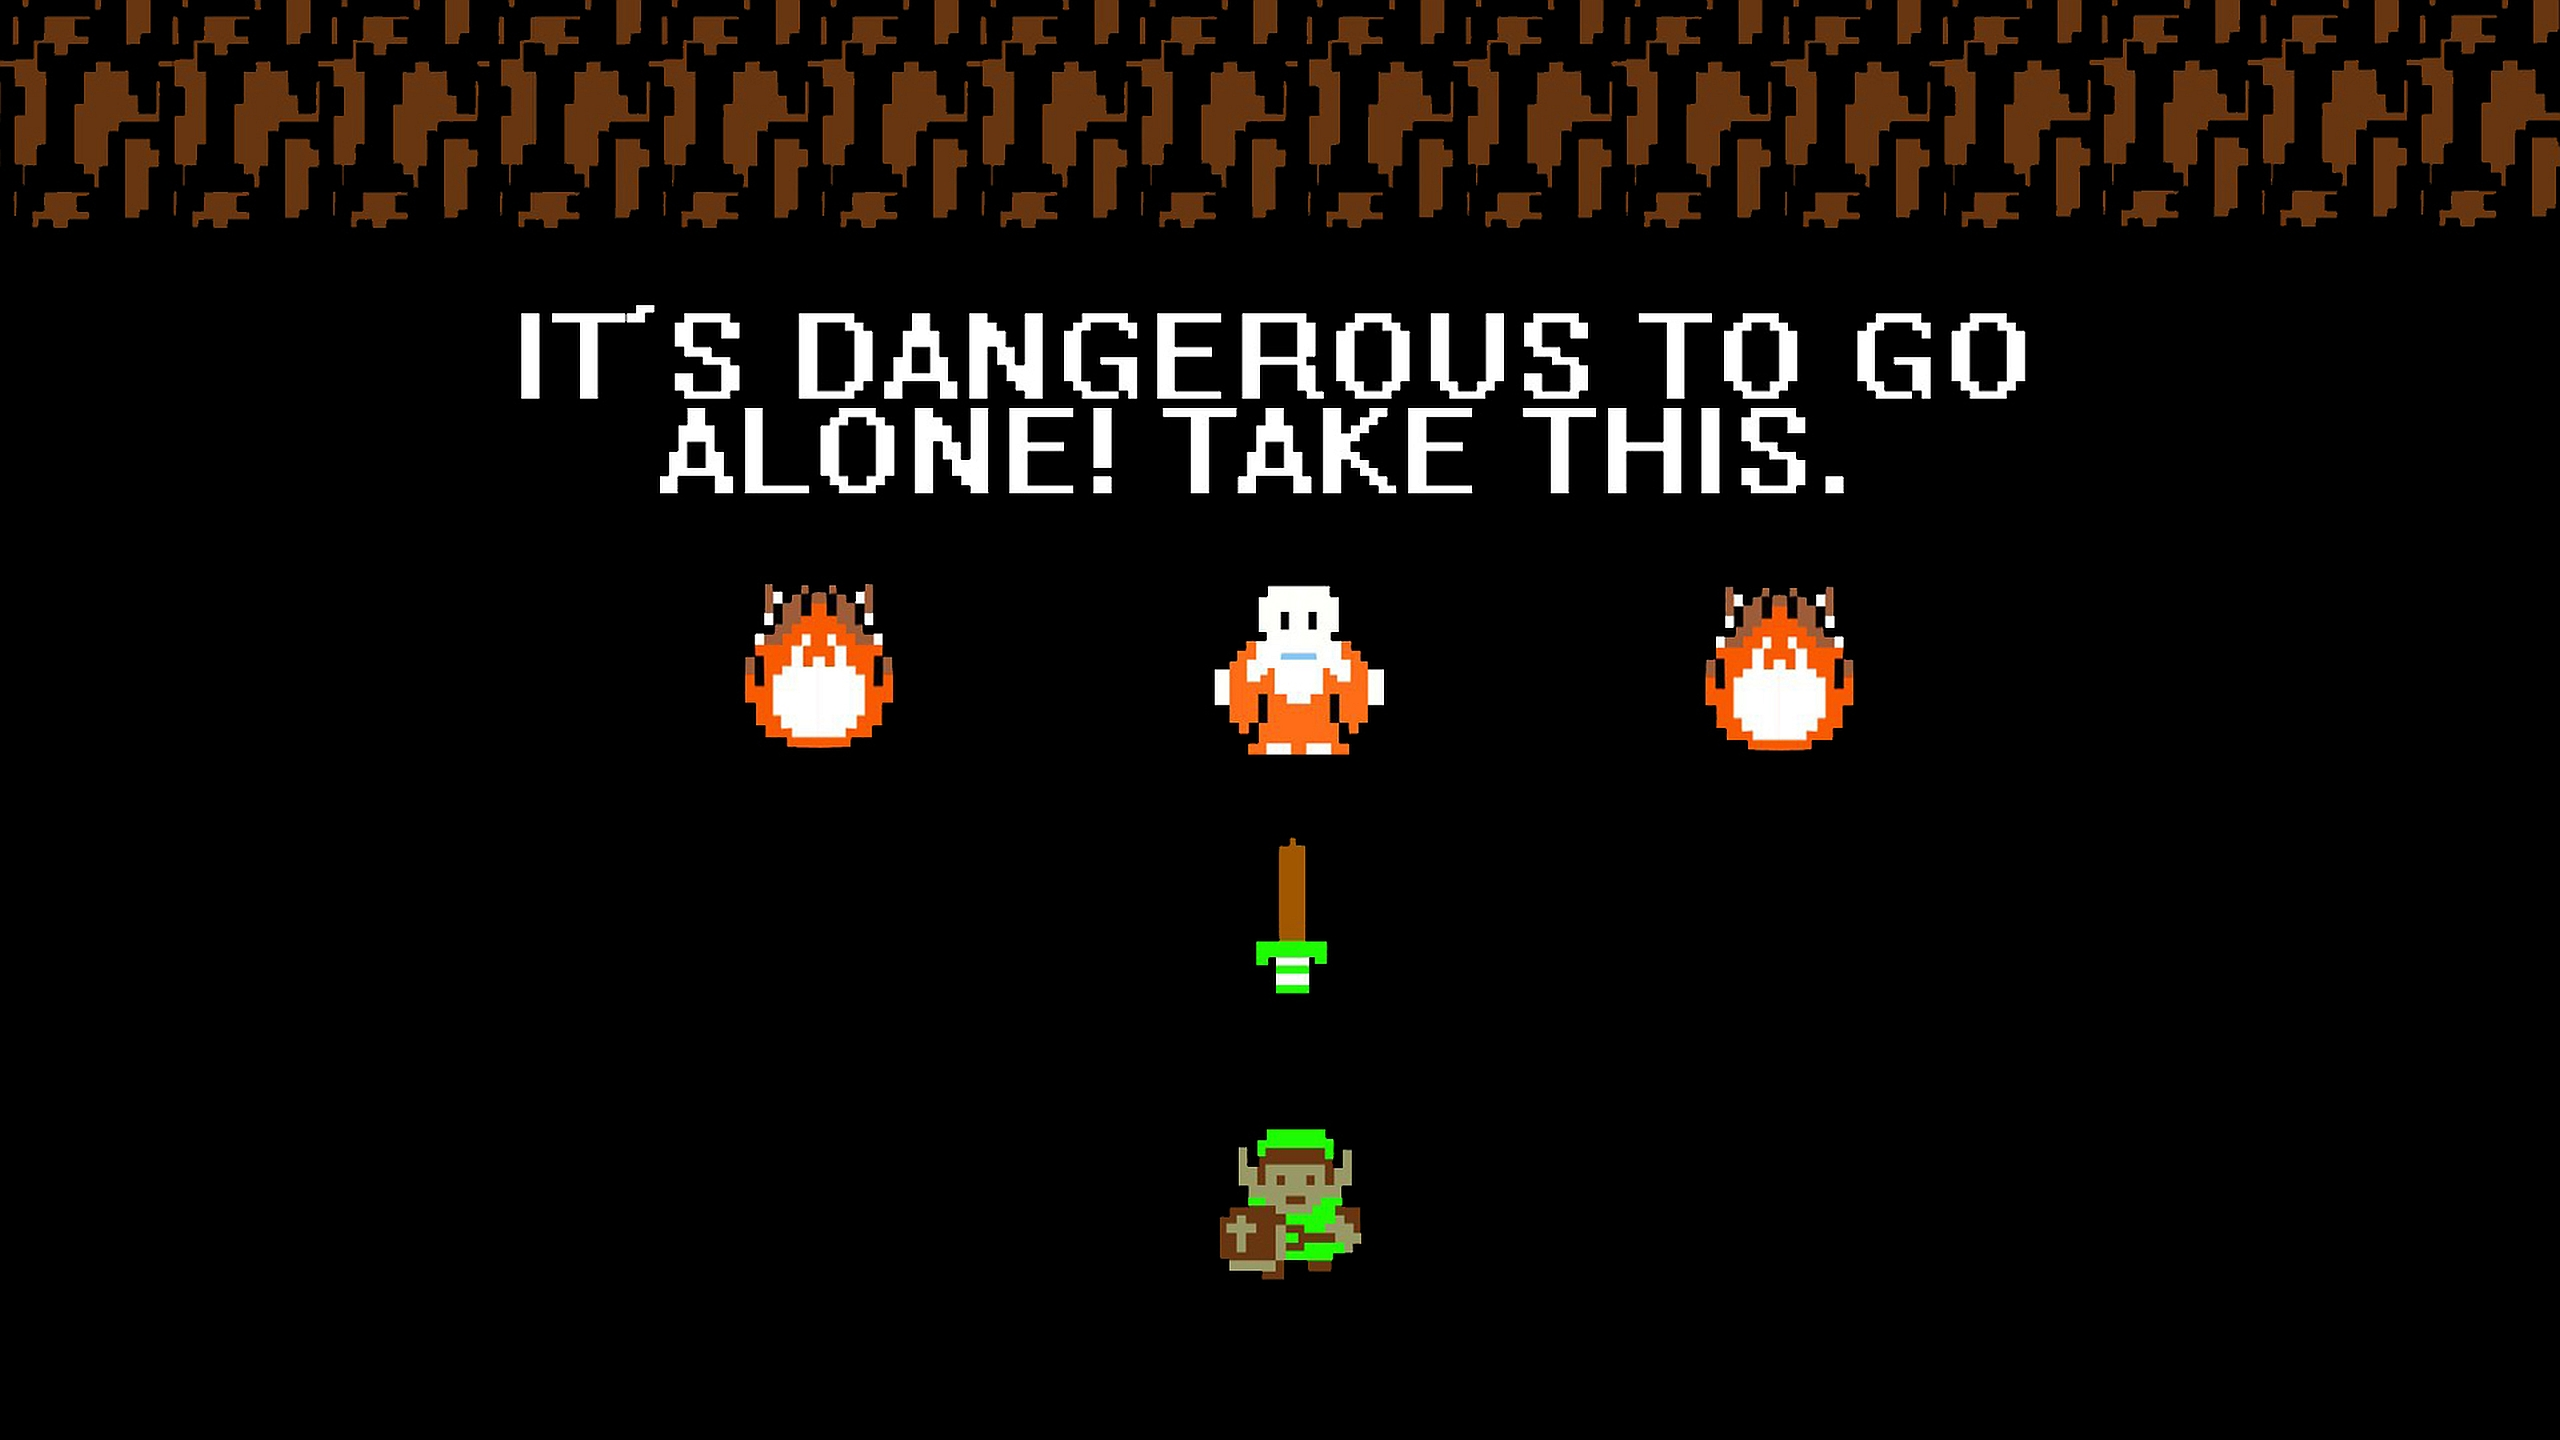 Zelda Quotes The Legend Of Zelda Full Hd Wallpaper And Background Image